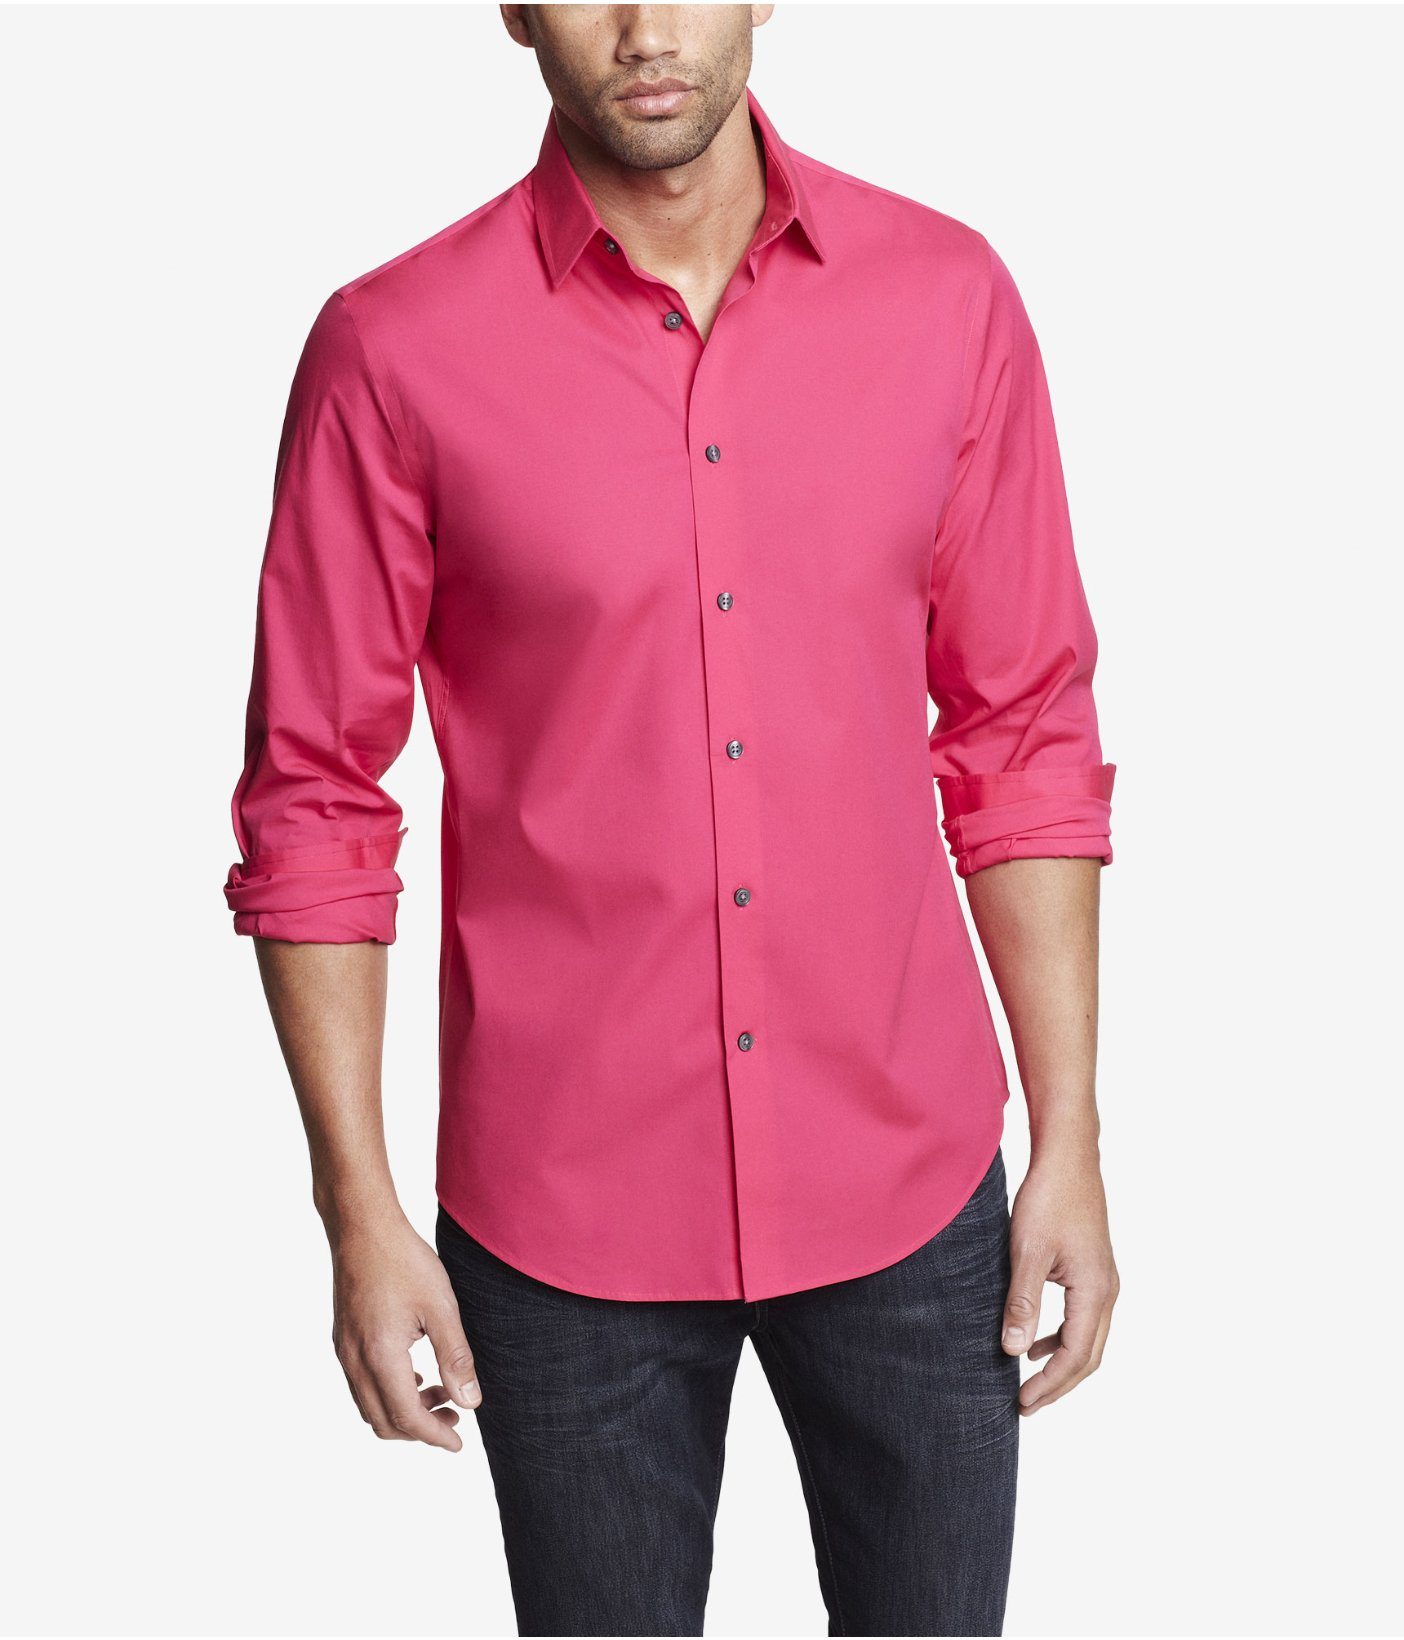 Lyst - Express Modern Fit 1mx Stretch Cotton Shirt in Pink for Men